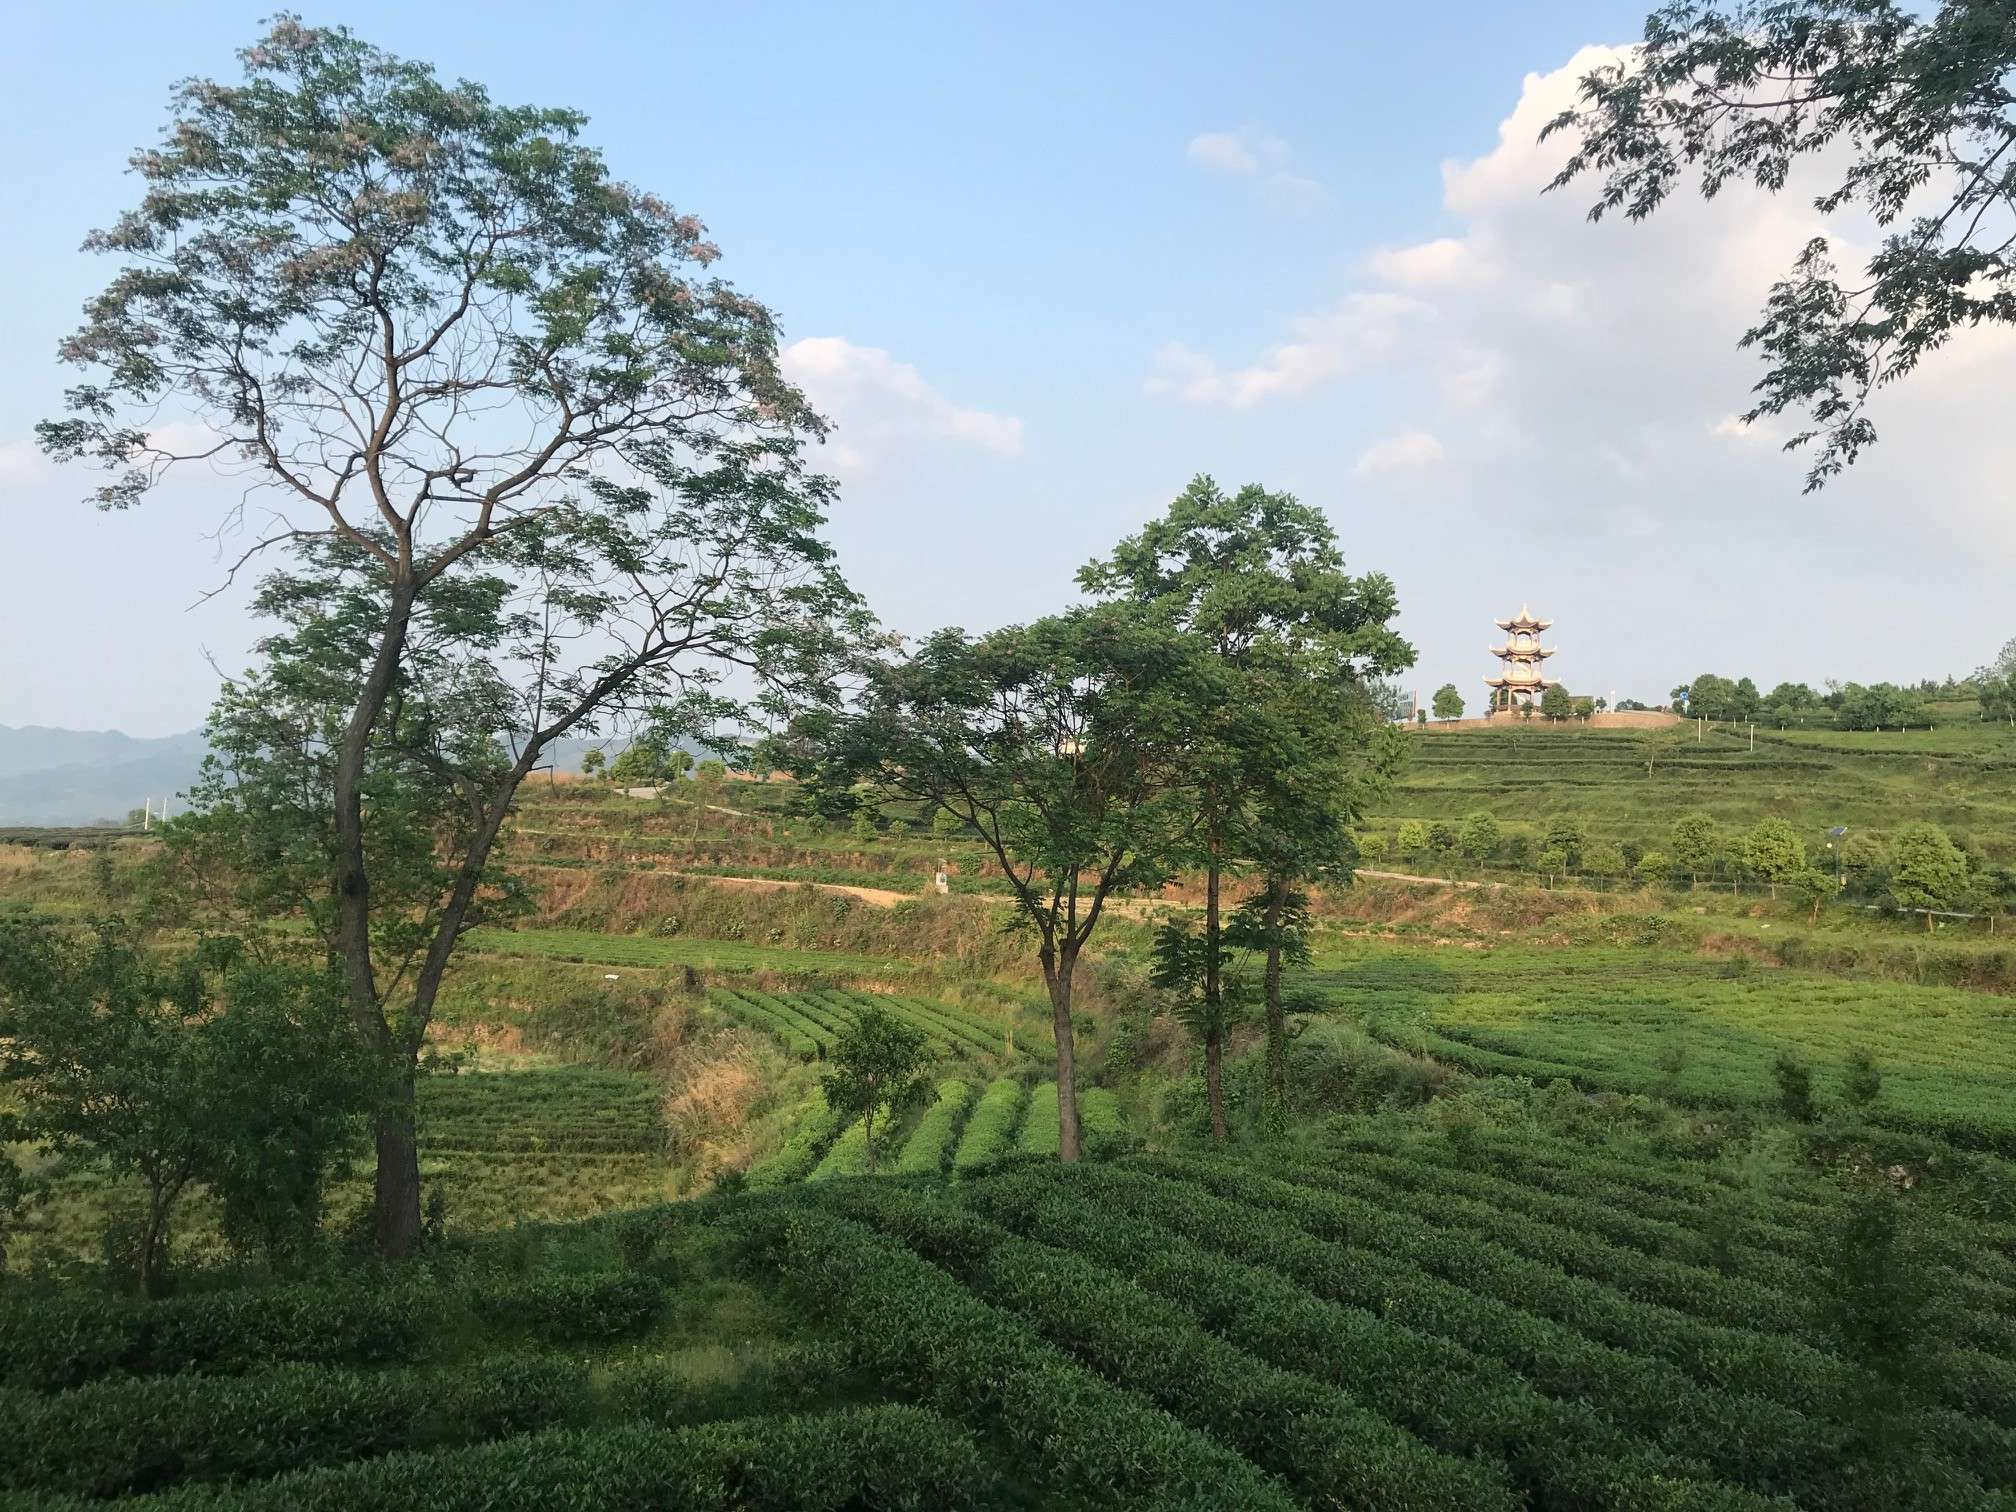 Precious State: The Unusual and Obscure Teas of Guizhou  – Part 3